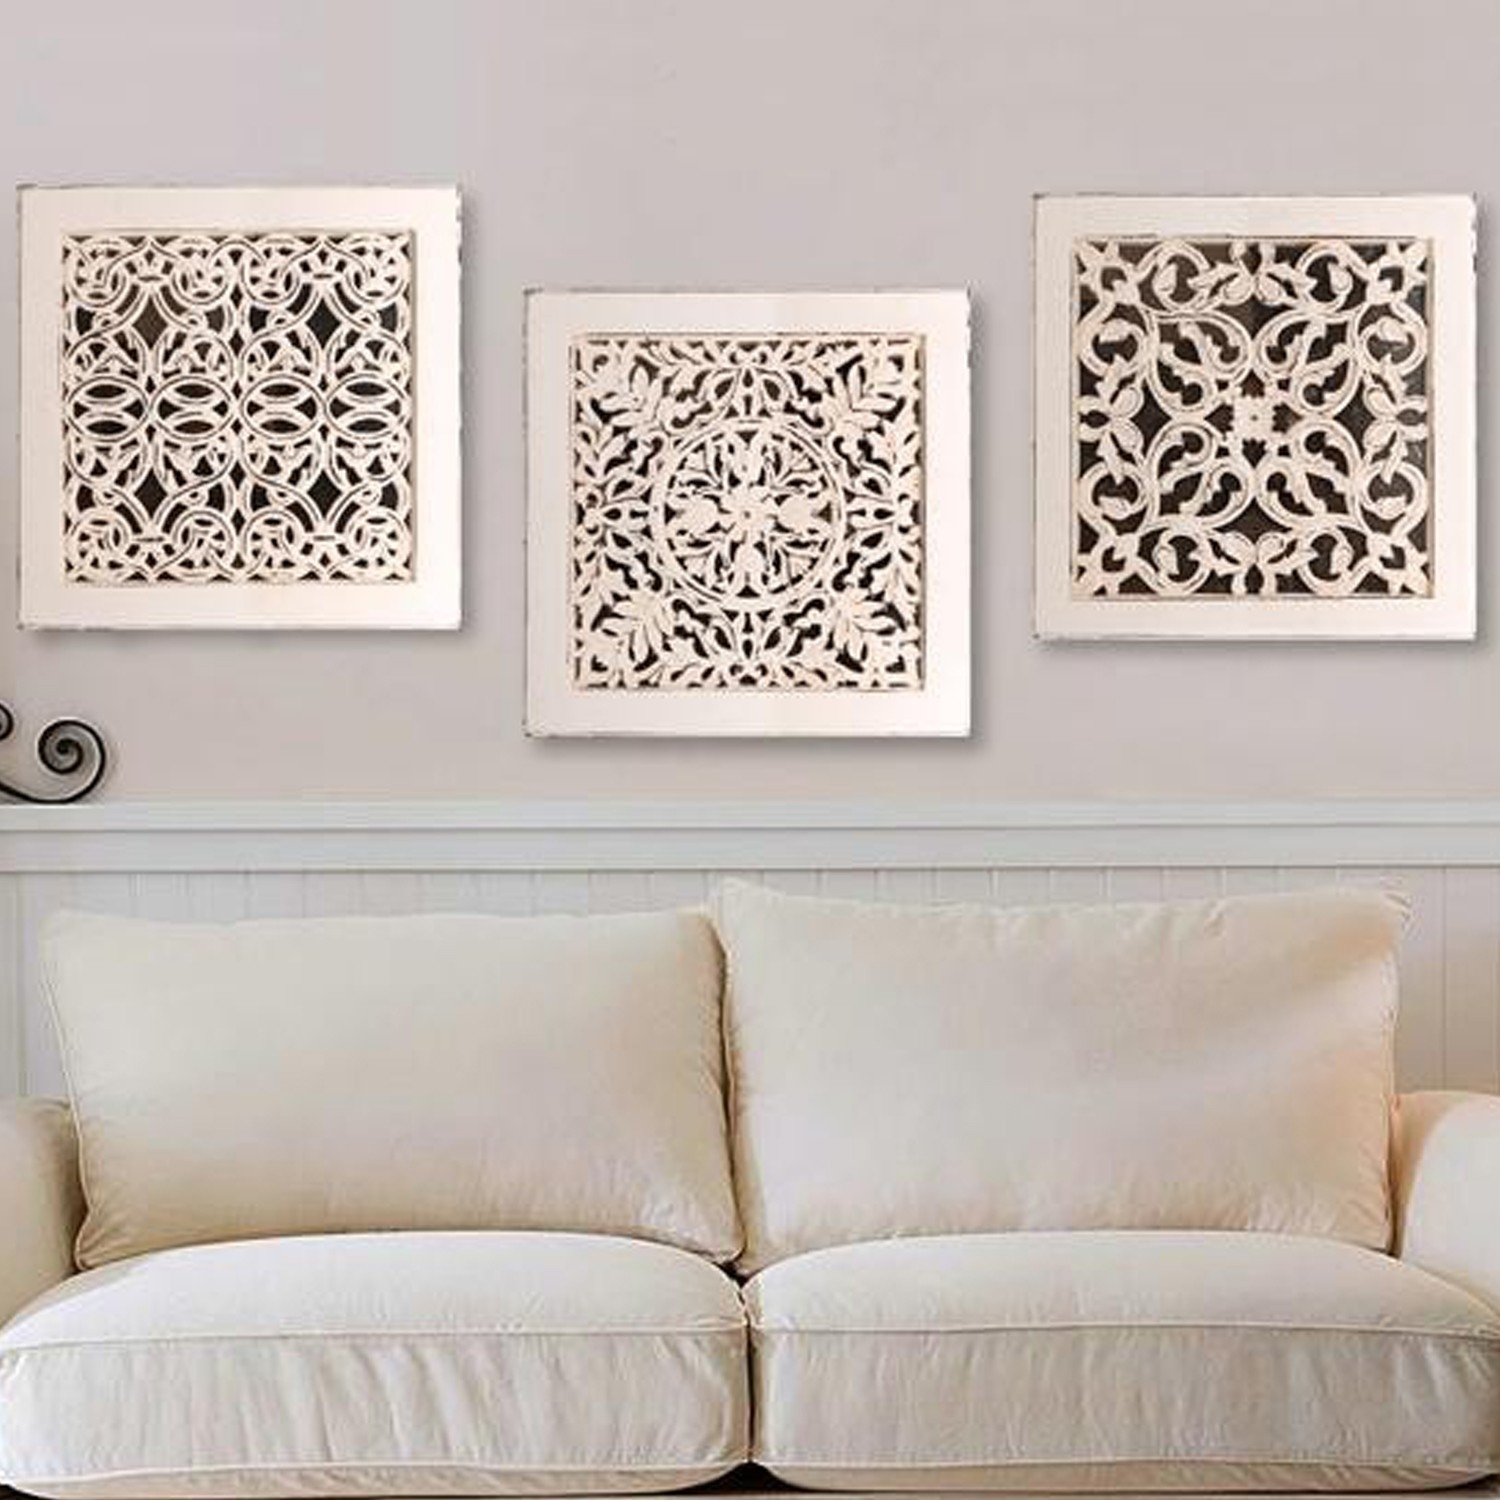 Fretwork Wall Art: White (set Of 3) | The Yellow Door Store Throughout Most Popular White Wall Art (View 3 of 20)